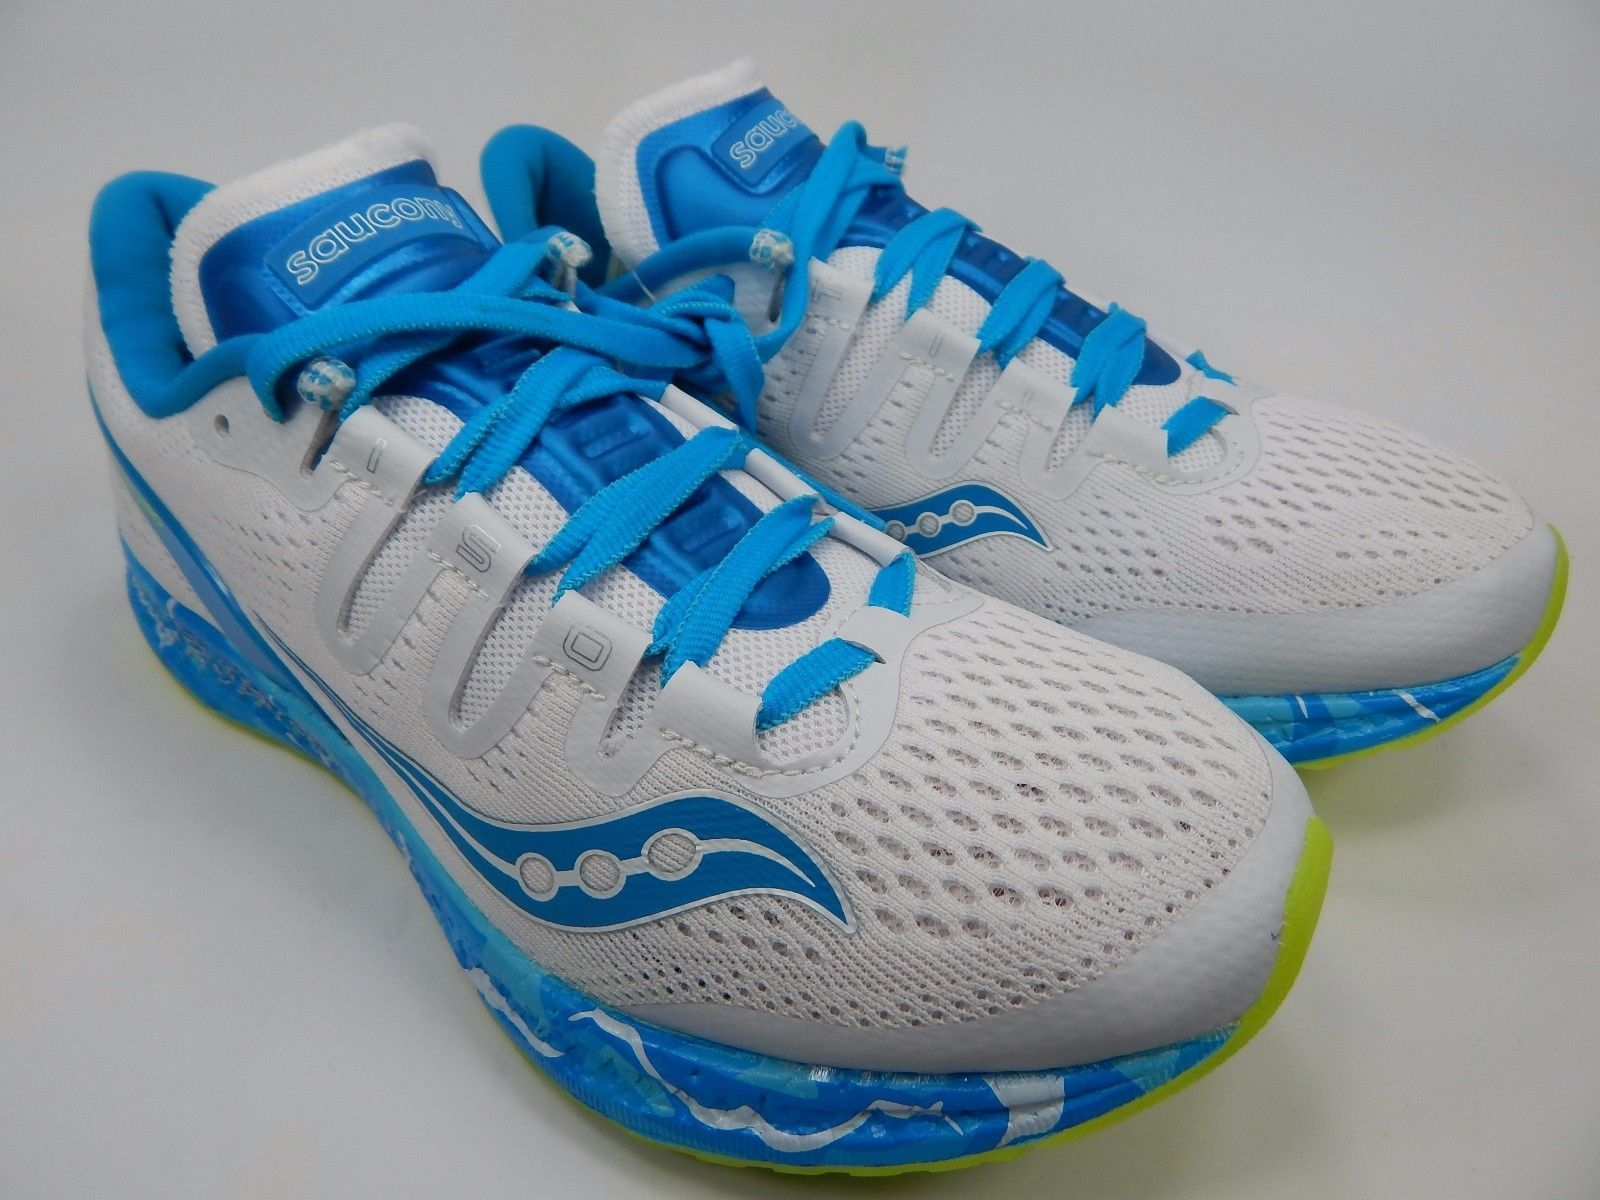 Saucony Freedom ISO Women's Running Shoes Size US 8 M (B) EU 39 White S10355-12